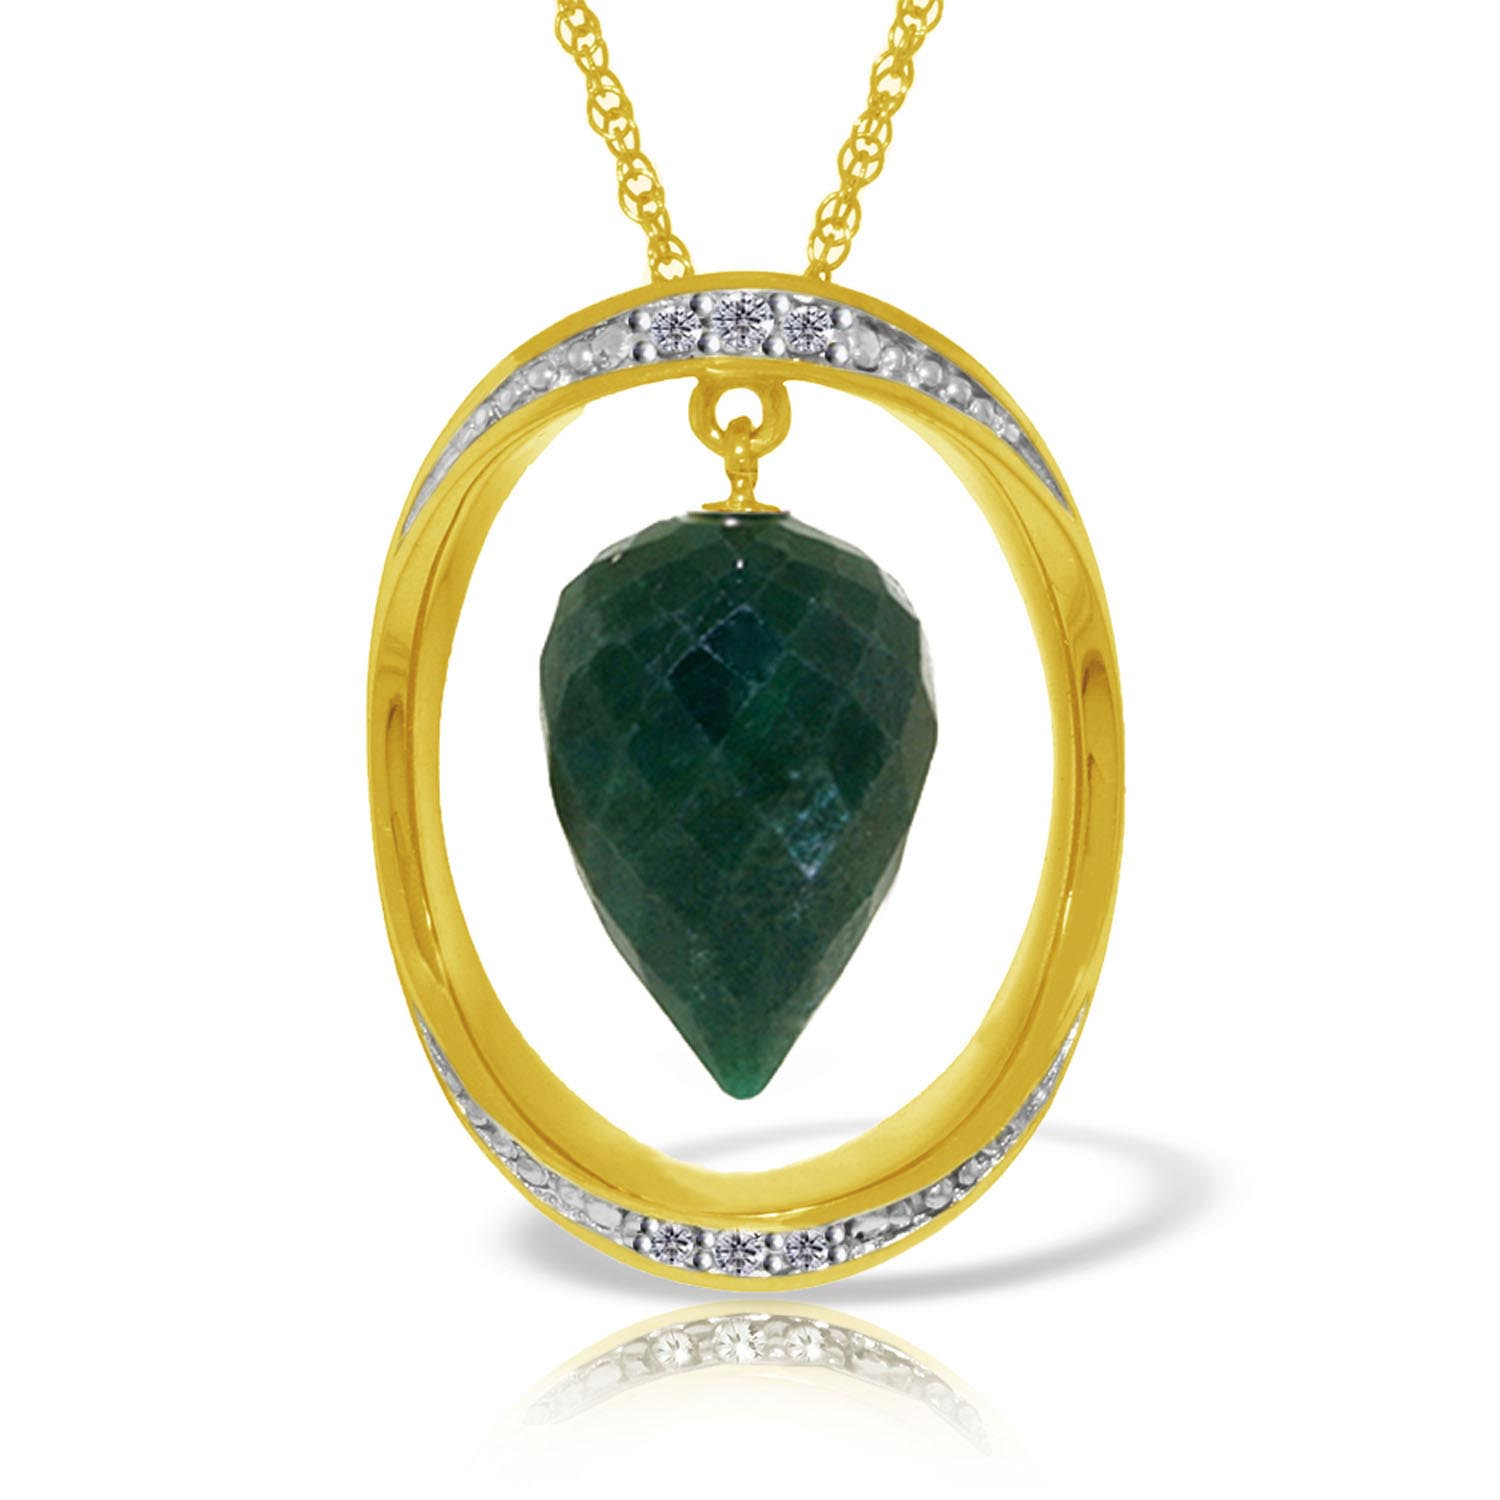 Emerald and Diamond Pendant Necklace 13.0ct in 9ct Gold